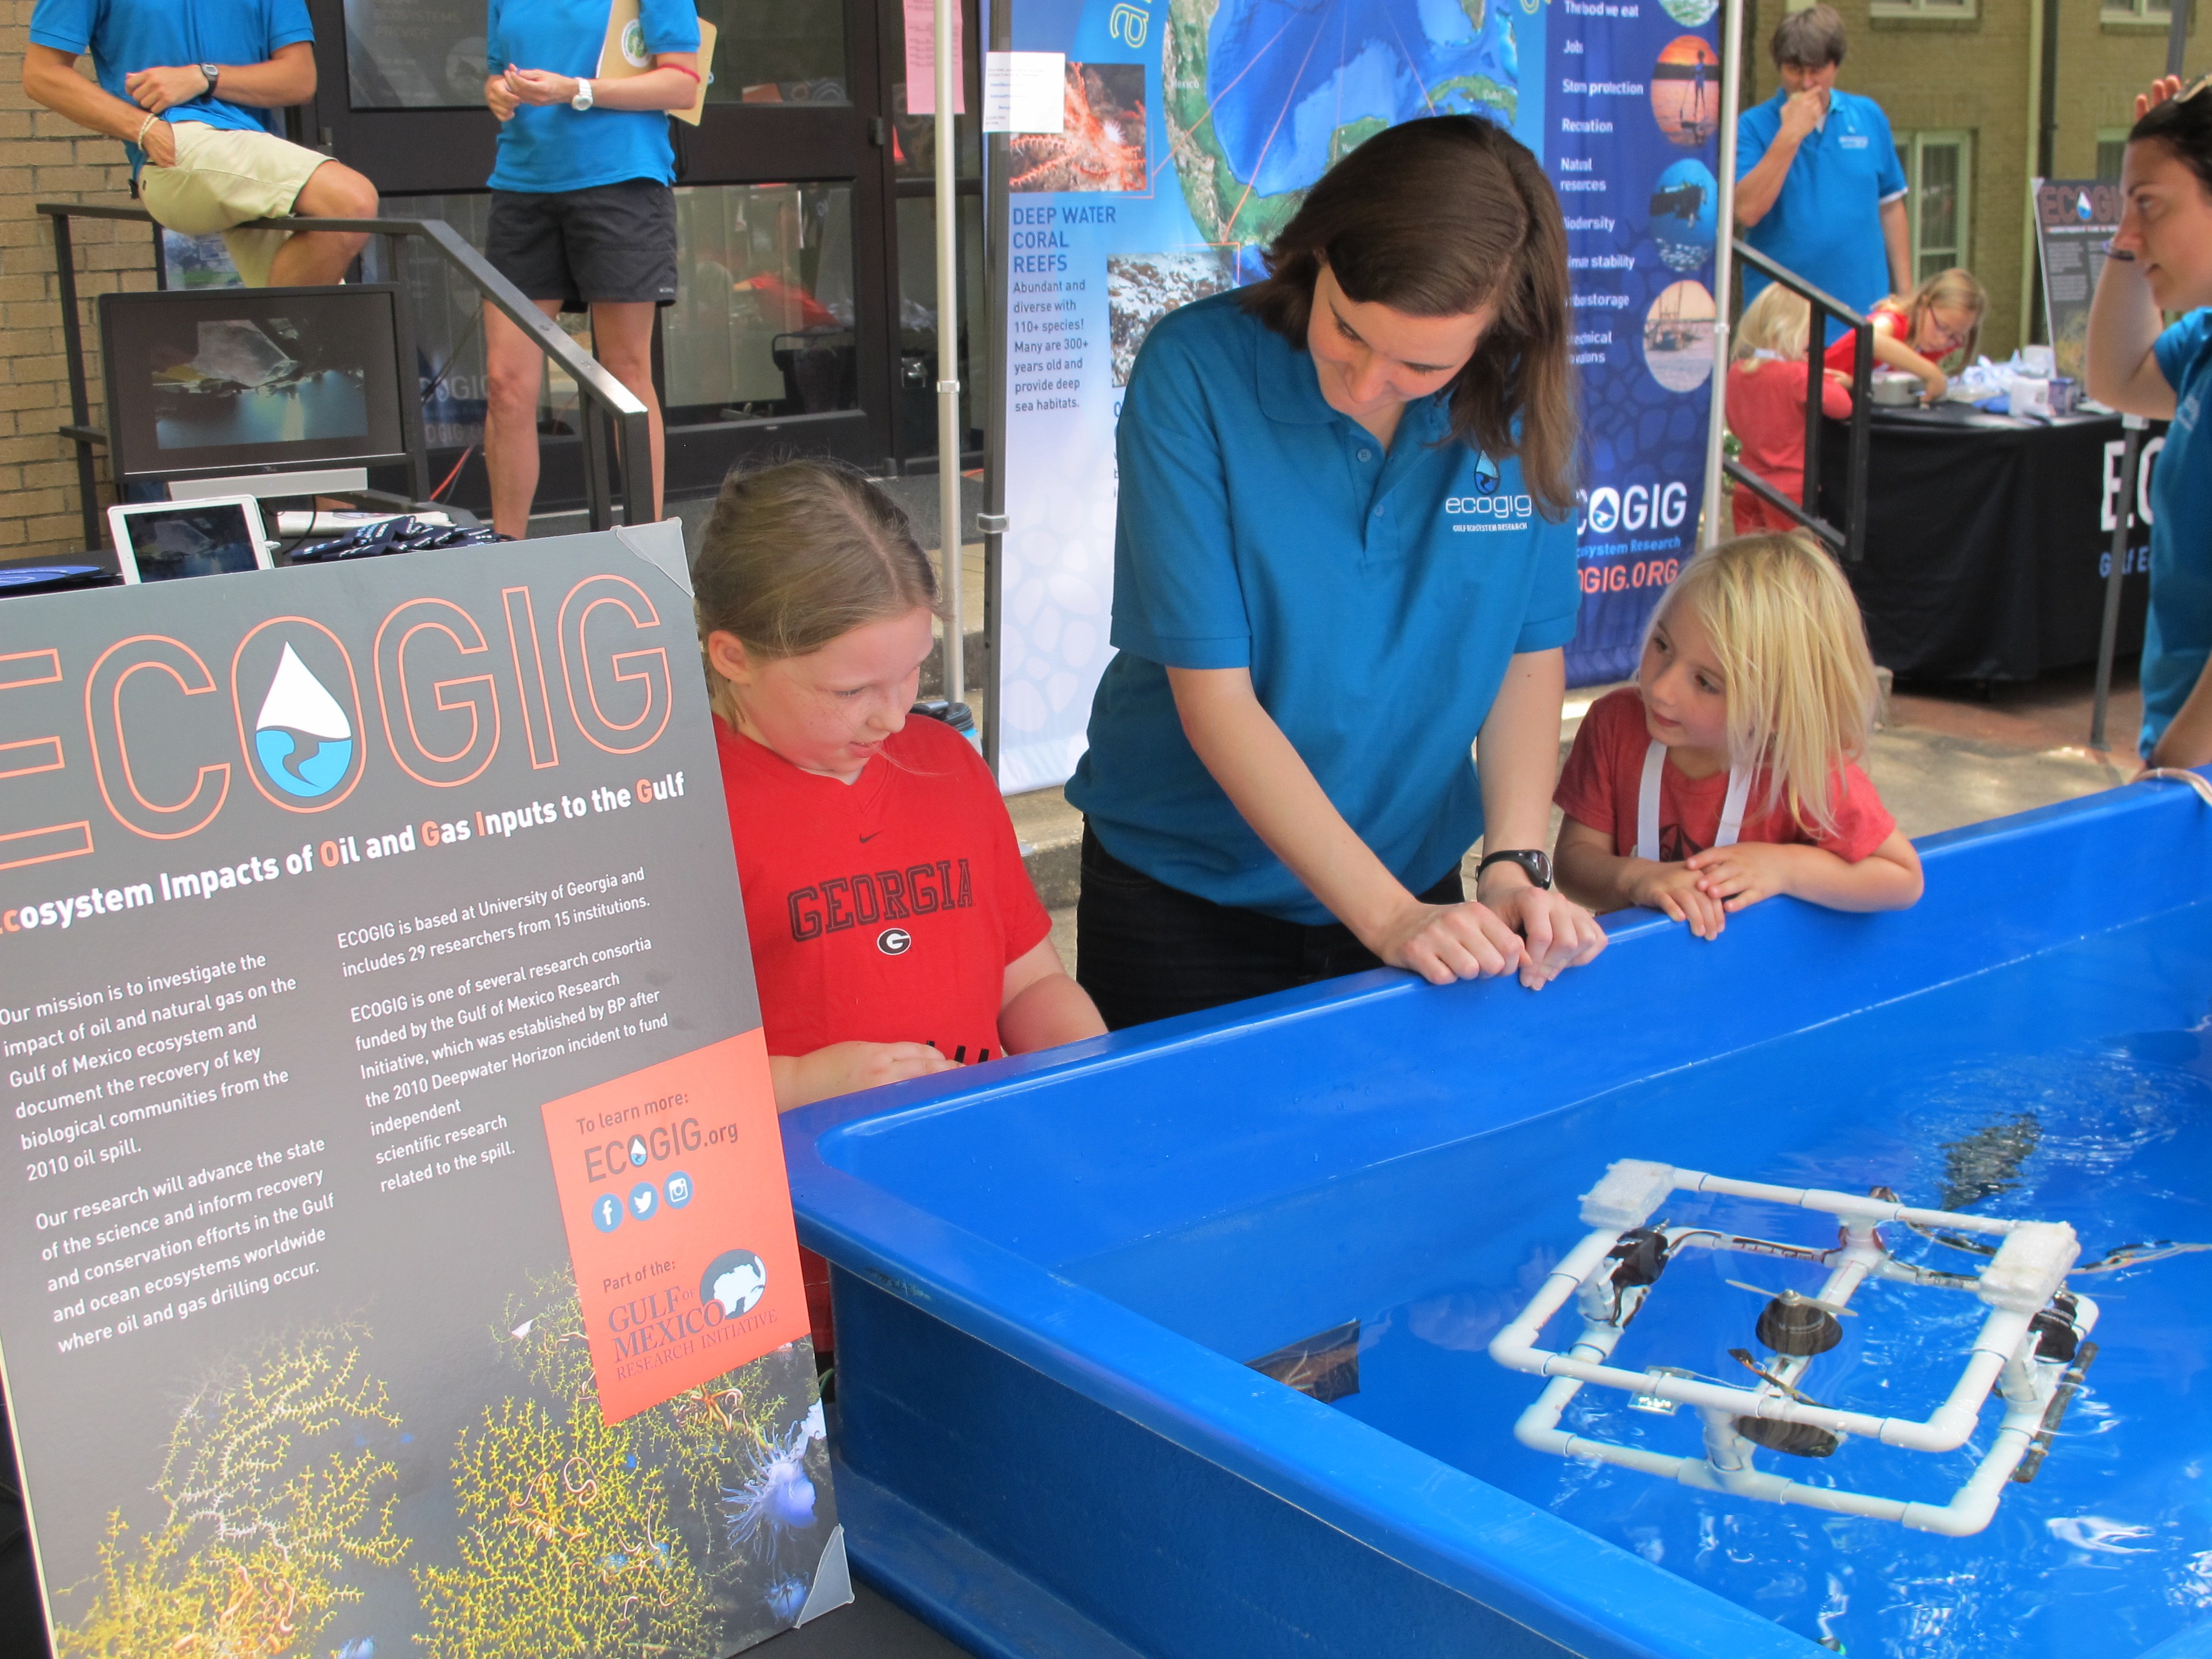 <div style='color:#000000;'><br /><br /><h2>UGA football home game 2015- ECOGIG graduate student Sarah Harrison shares her knowledge with visitors to the Ocean Discovery Zone before a University of Georgia home football game.</h2>(C)&nbsp;ECOGIG</div>